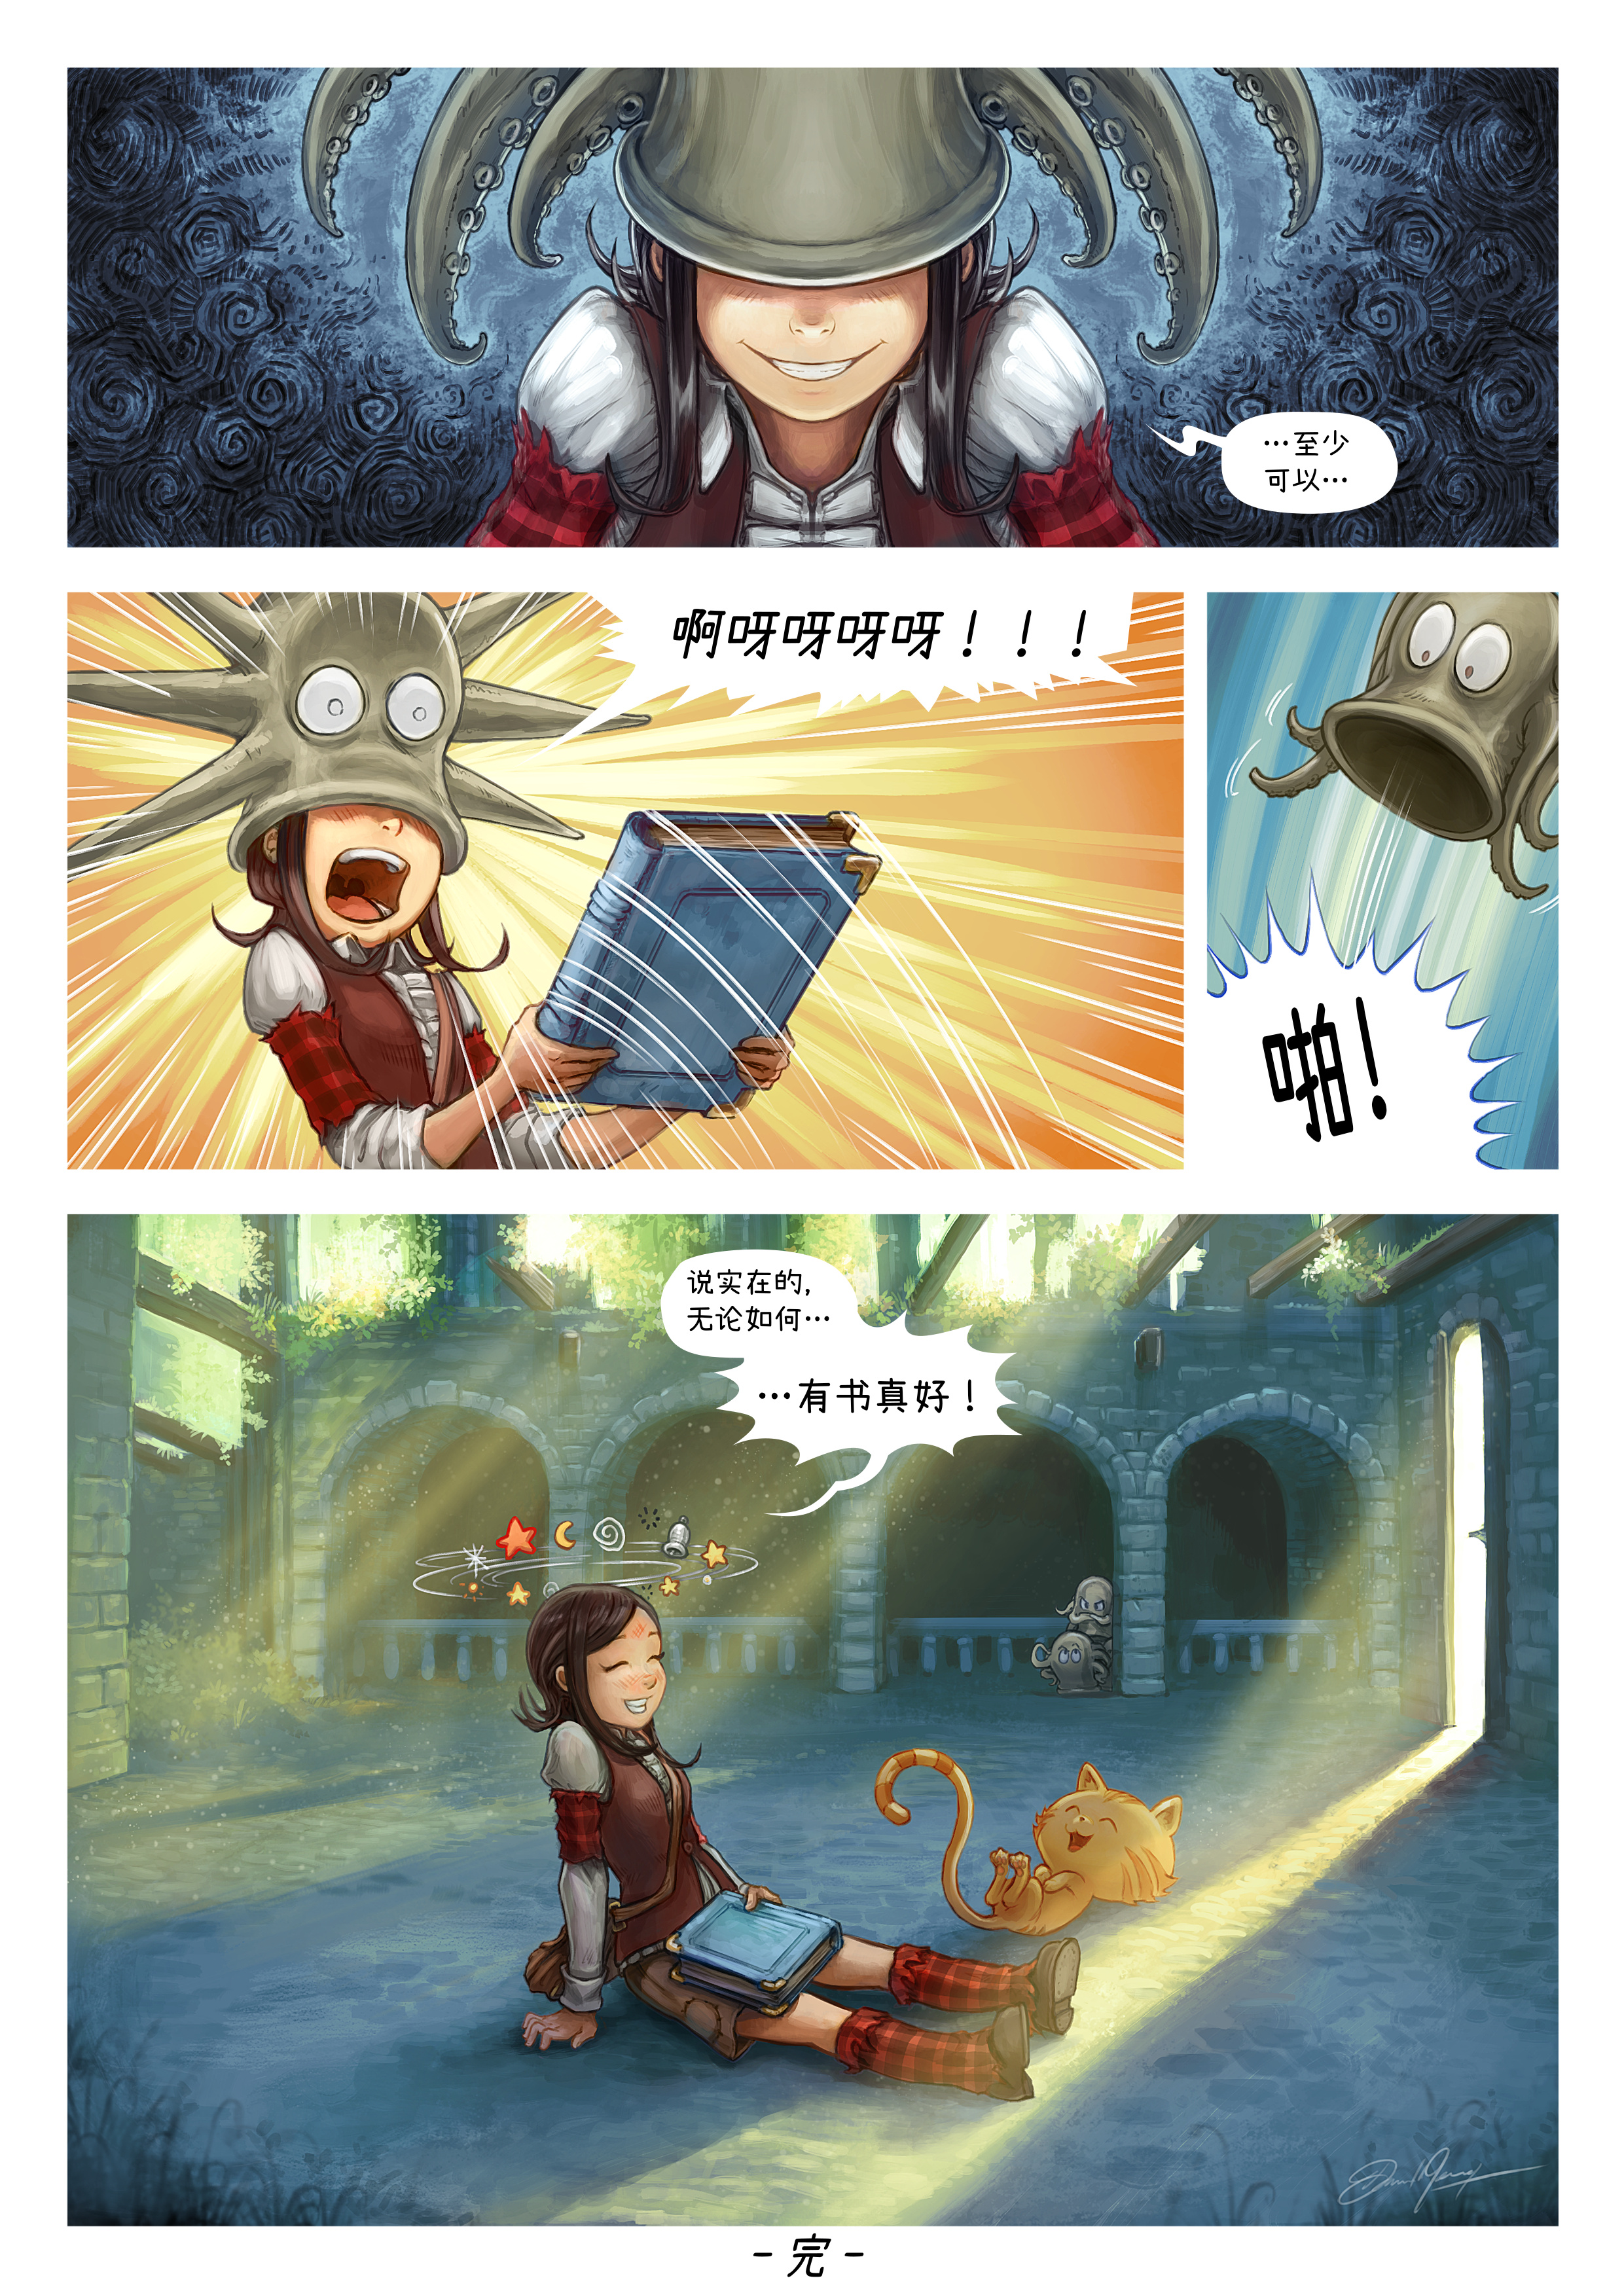 A webcomic page of Pepper&Carrot, 漫画全集 26 [cn], 页面 6